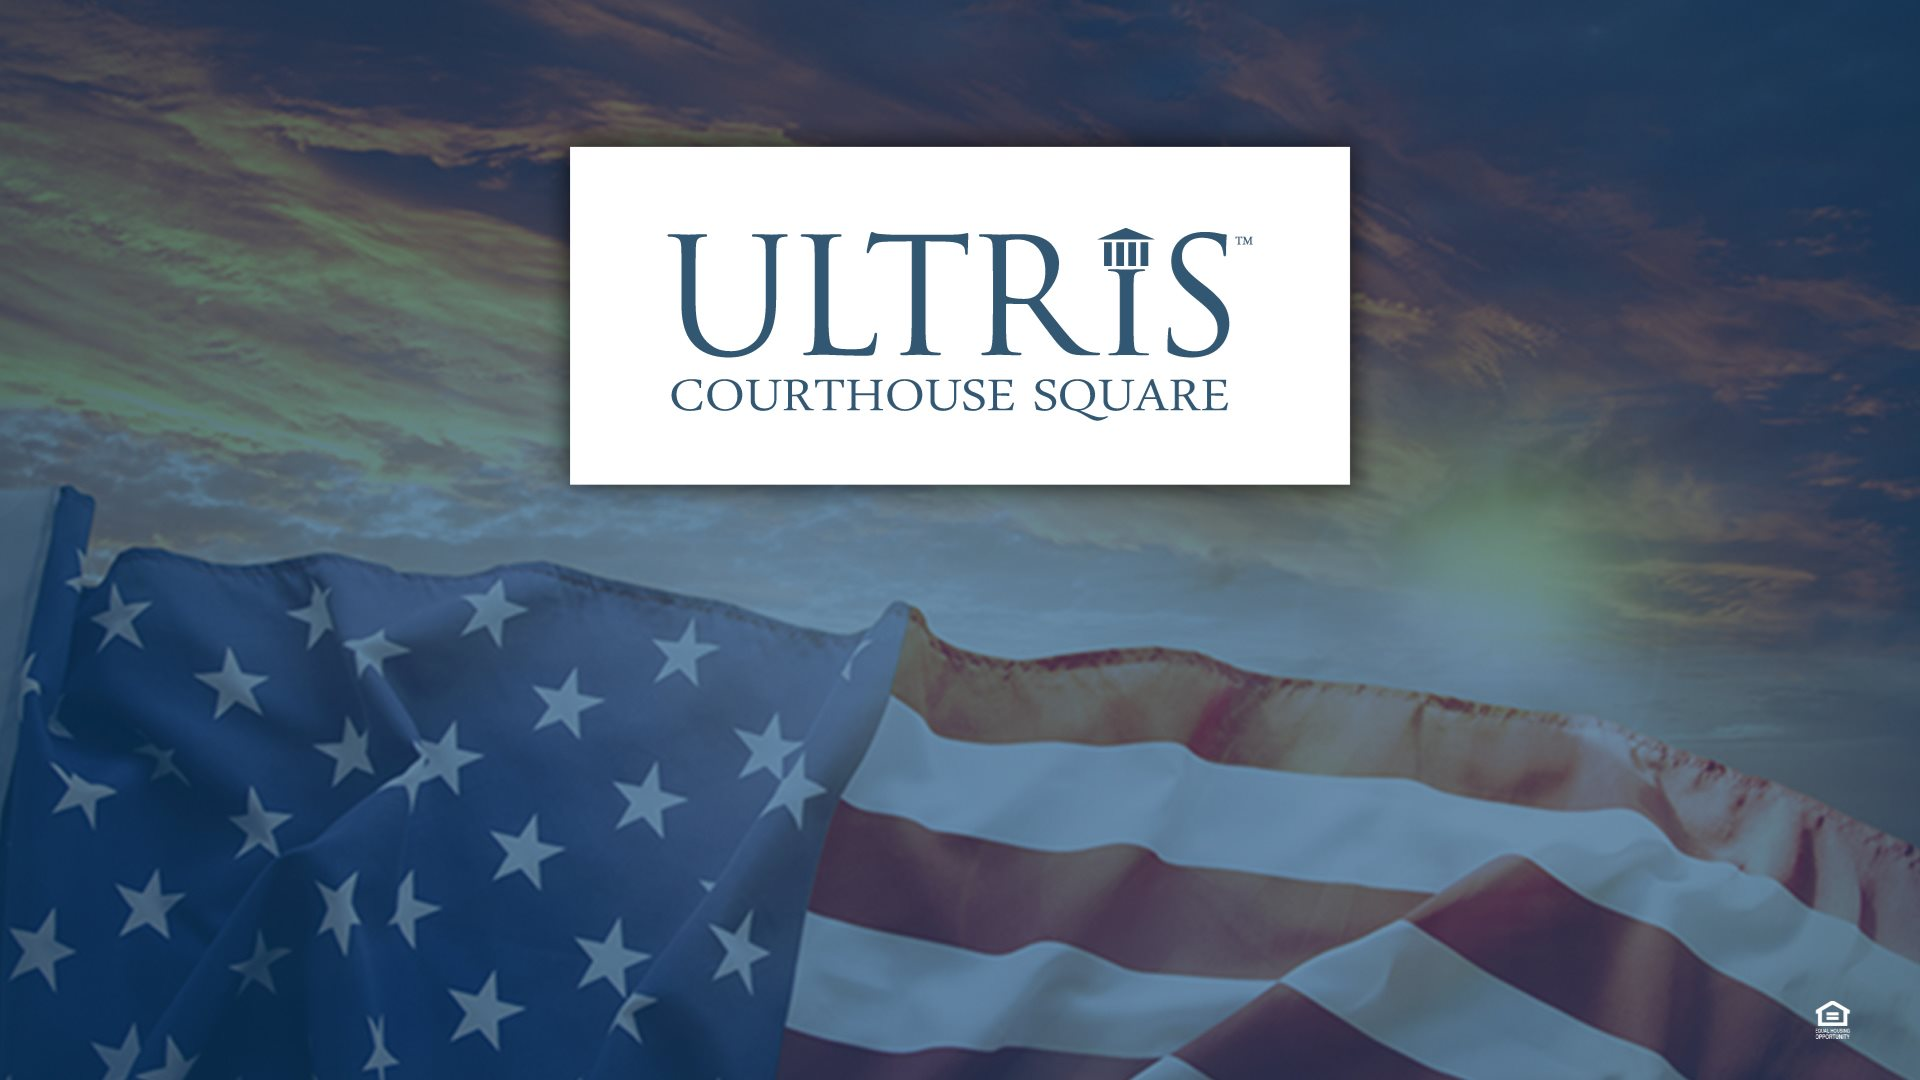 Ultris Courthouse Square, Stafford, VA, 22554